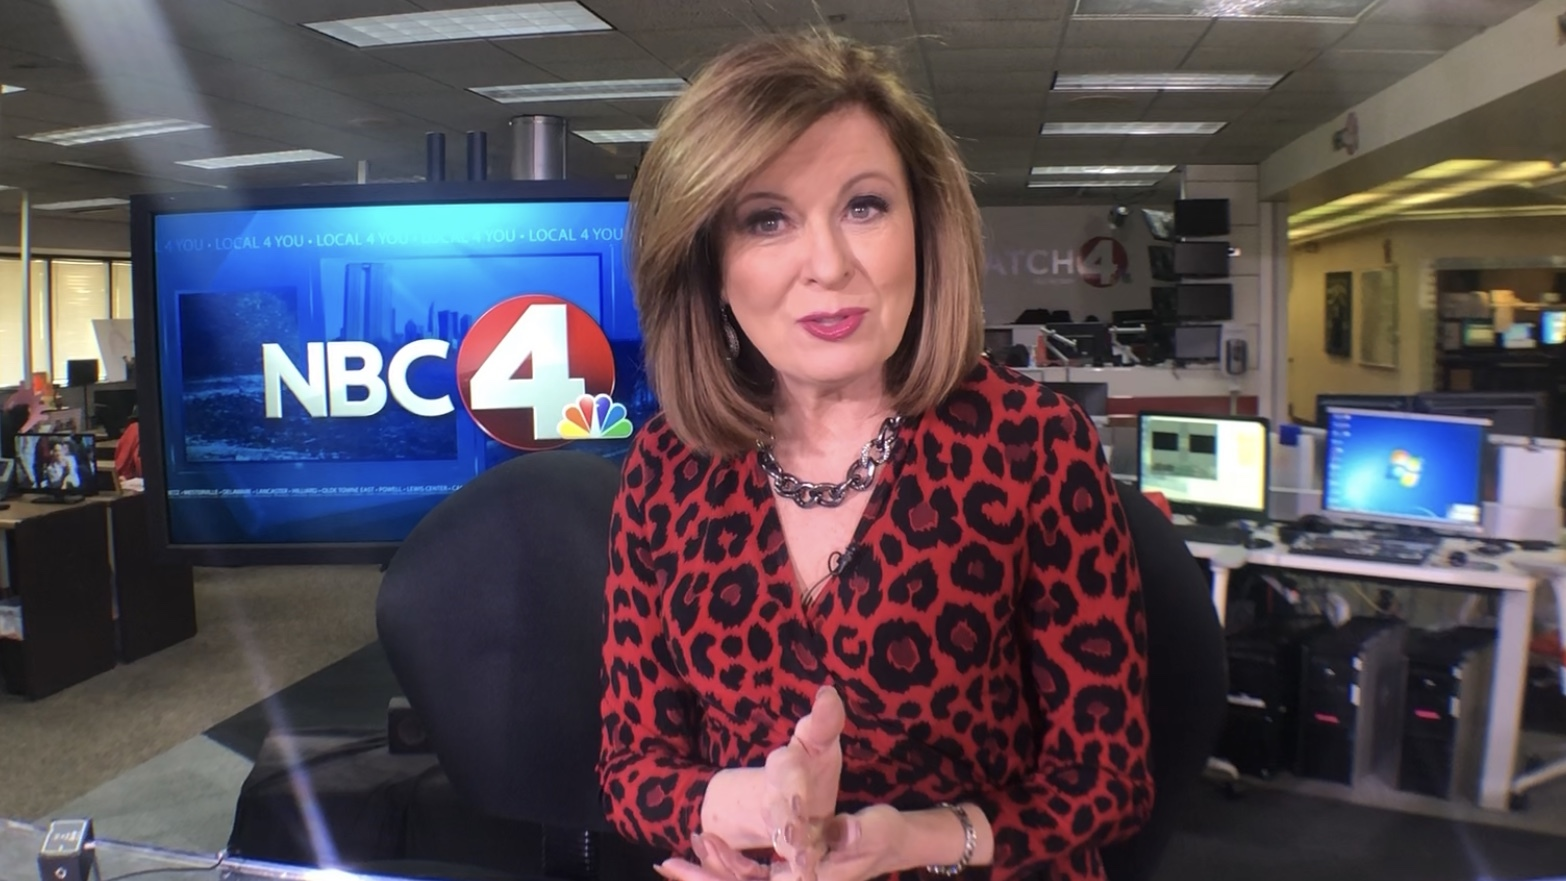 Colleen Marshall Long-time NBC4 employees reflect on WCMH 70th anniversary